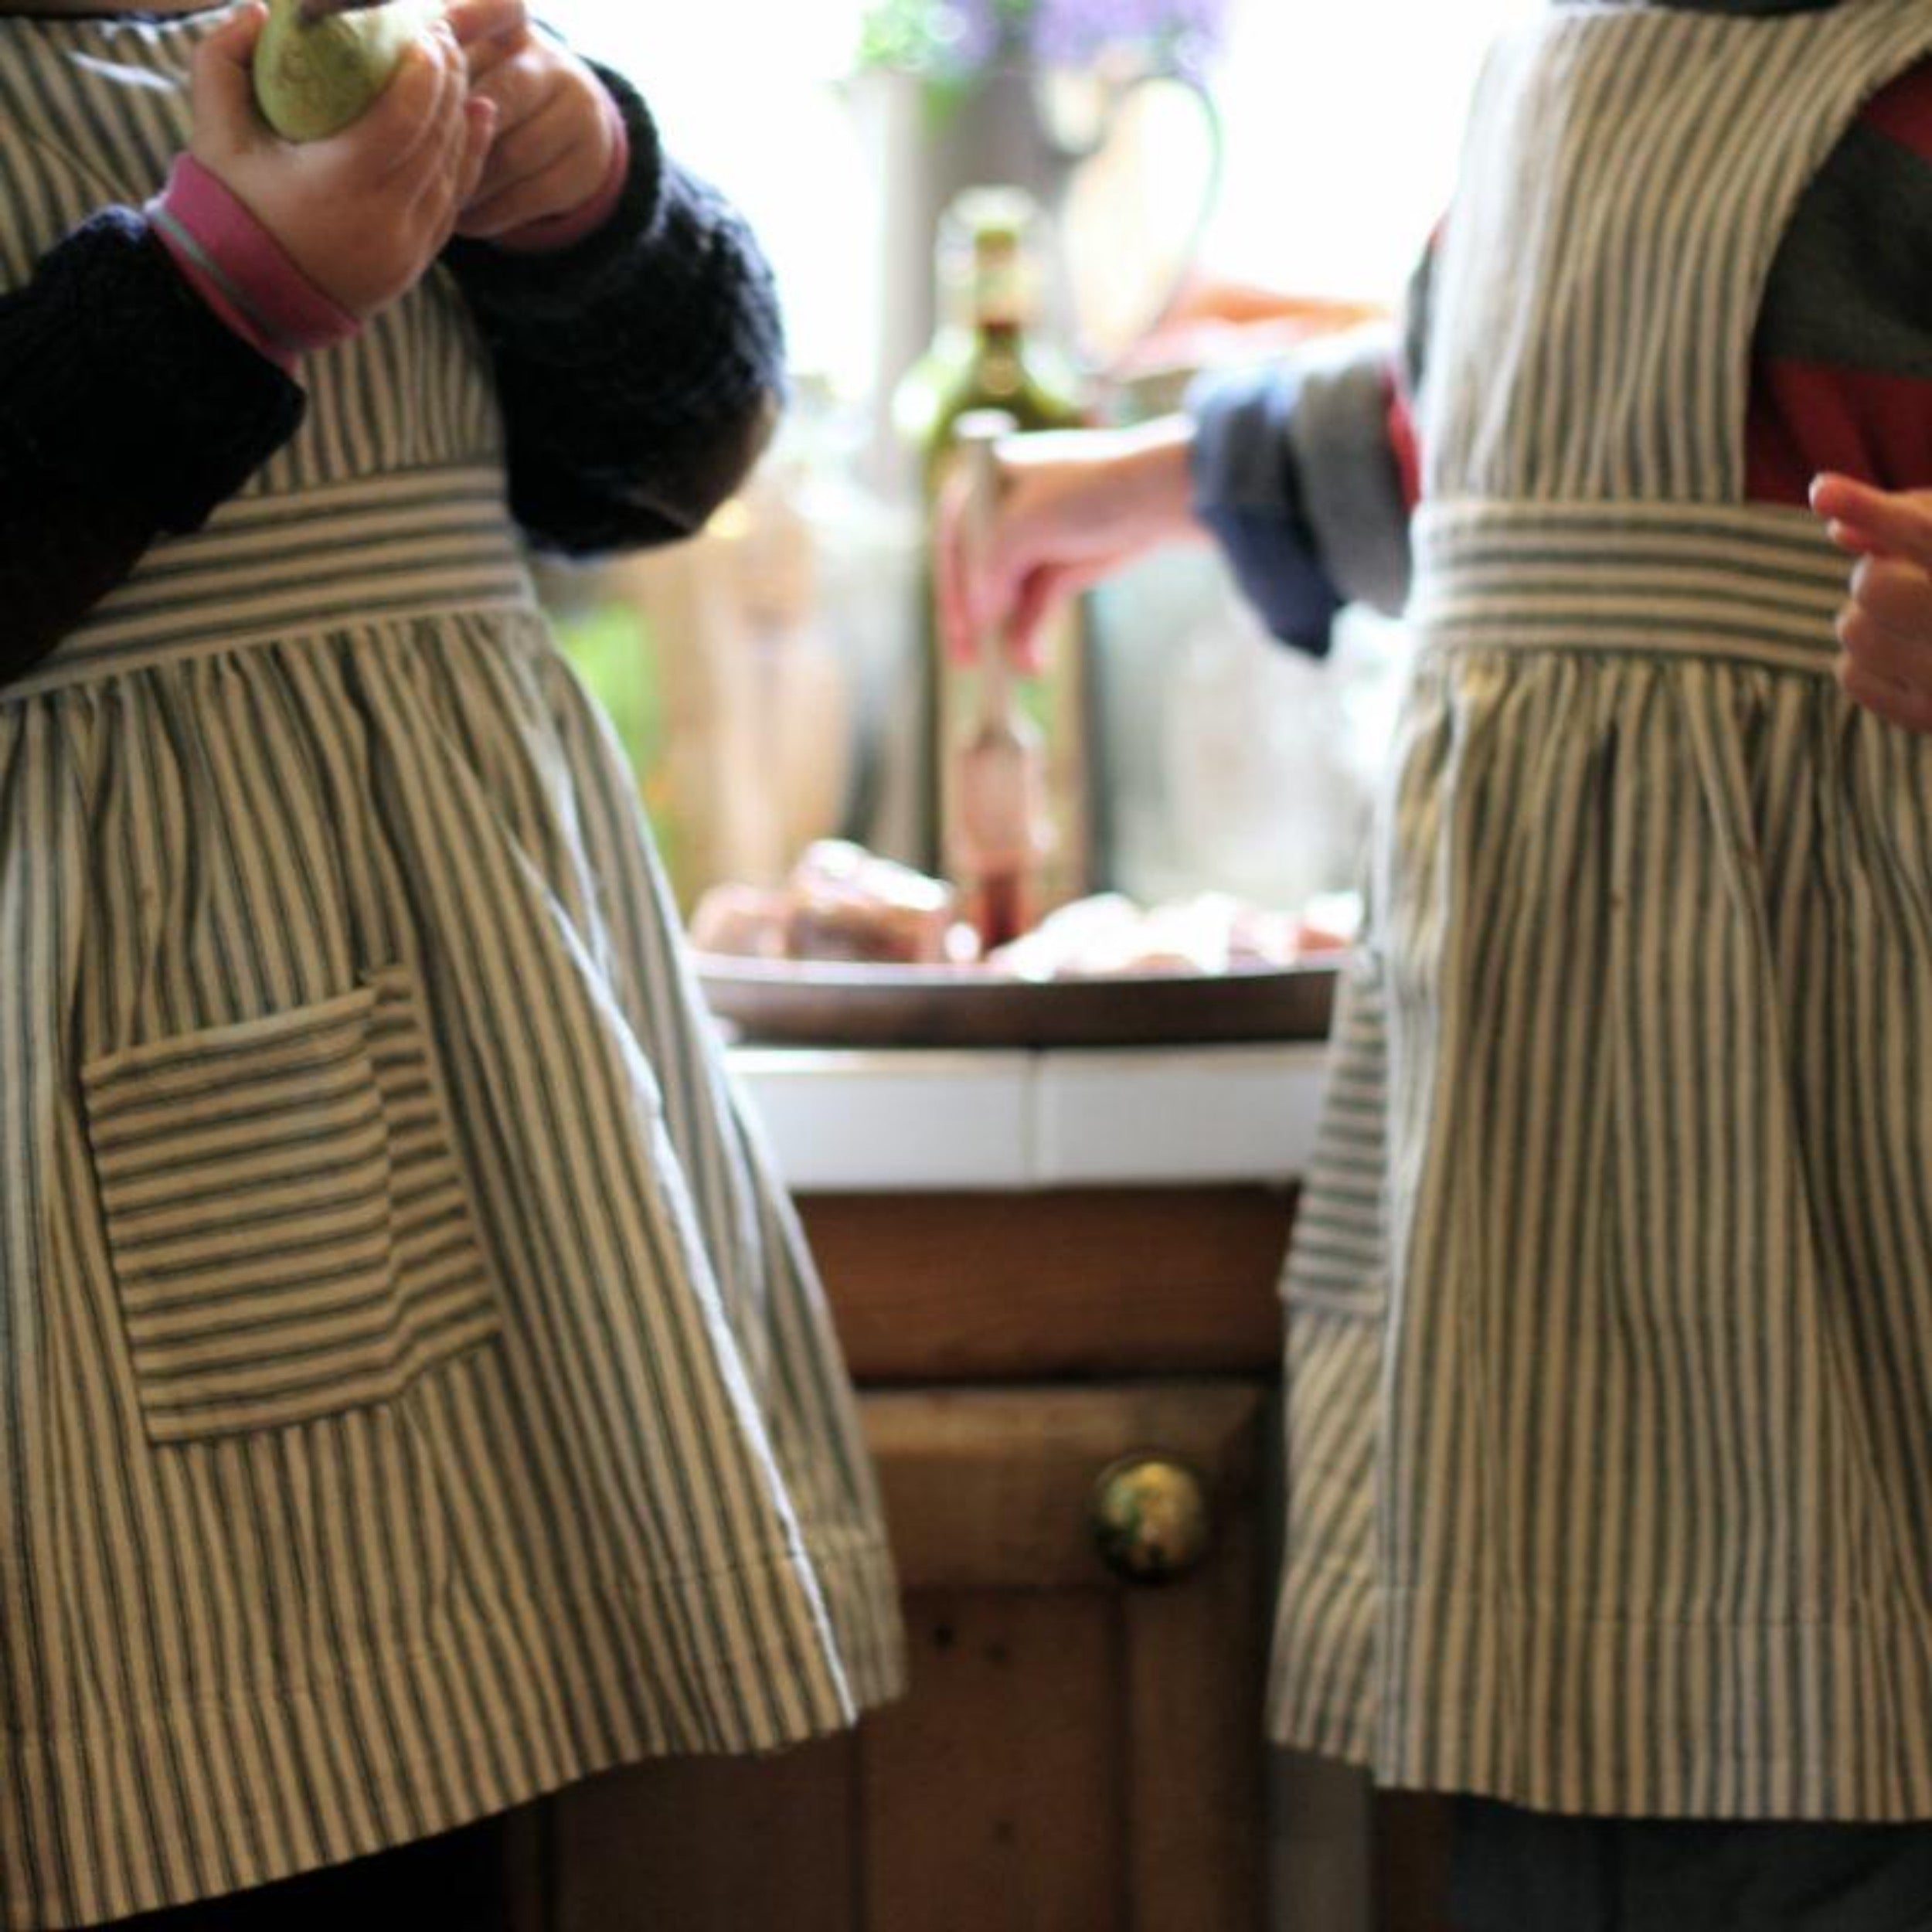 Children's Pinafore Apron, Kid's Apron, Pinny, Girl's Pinny